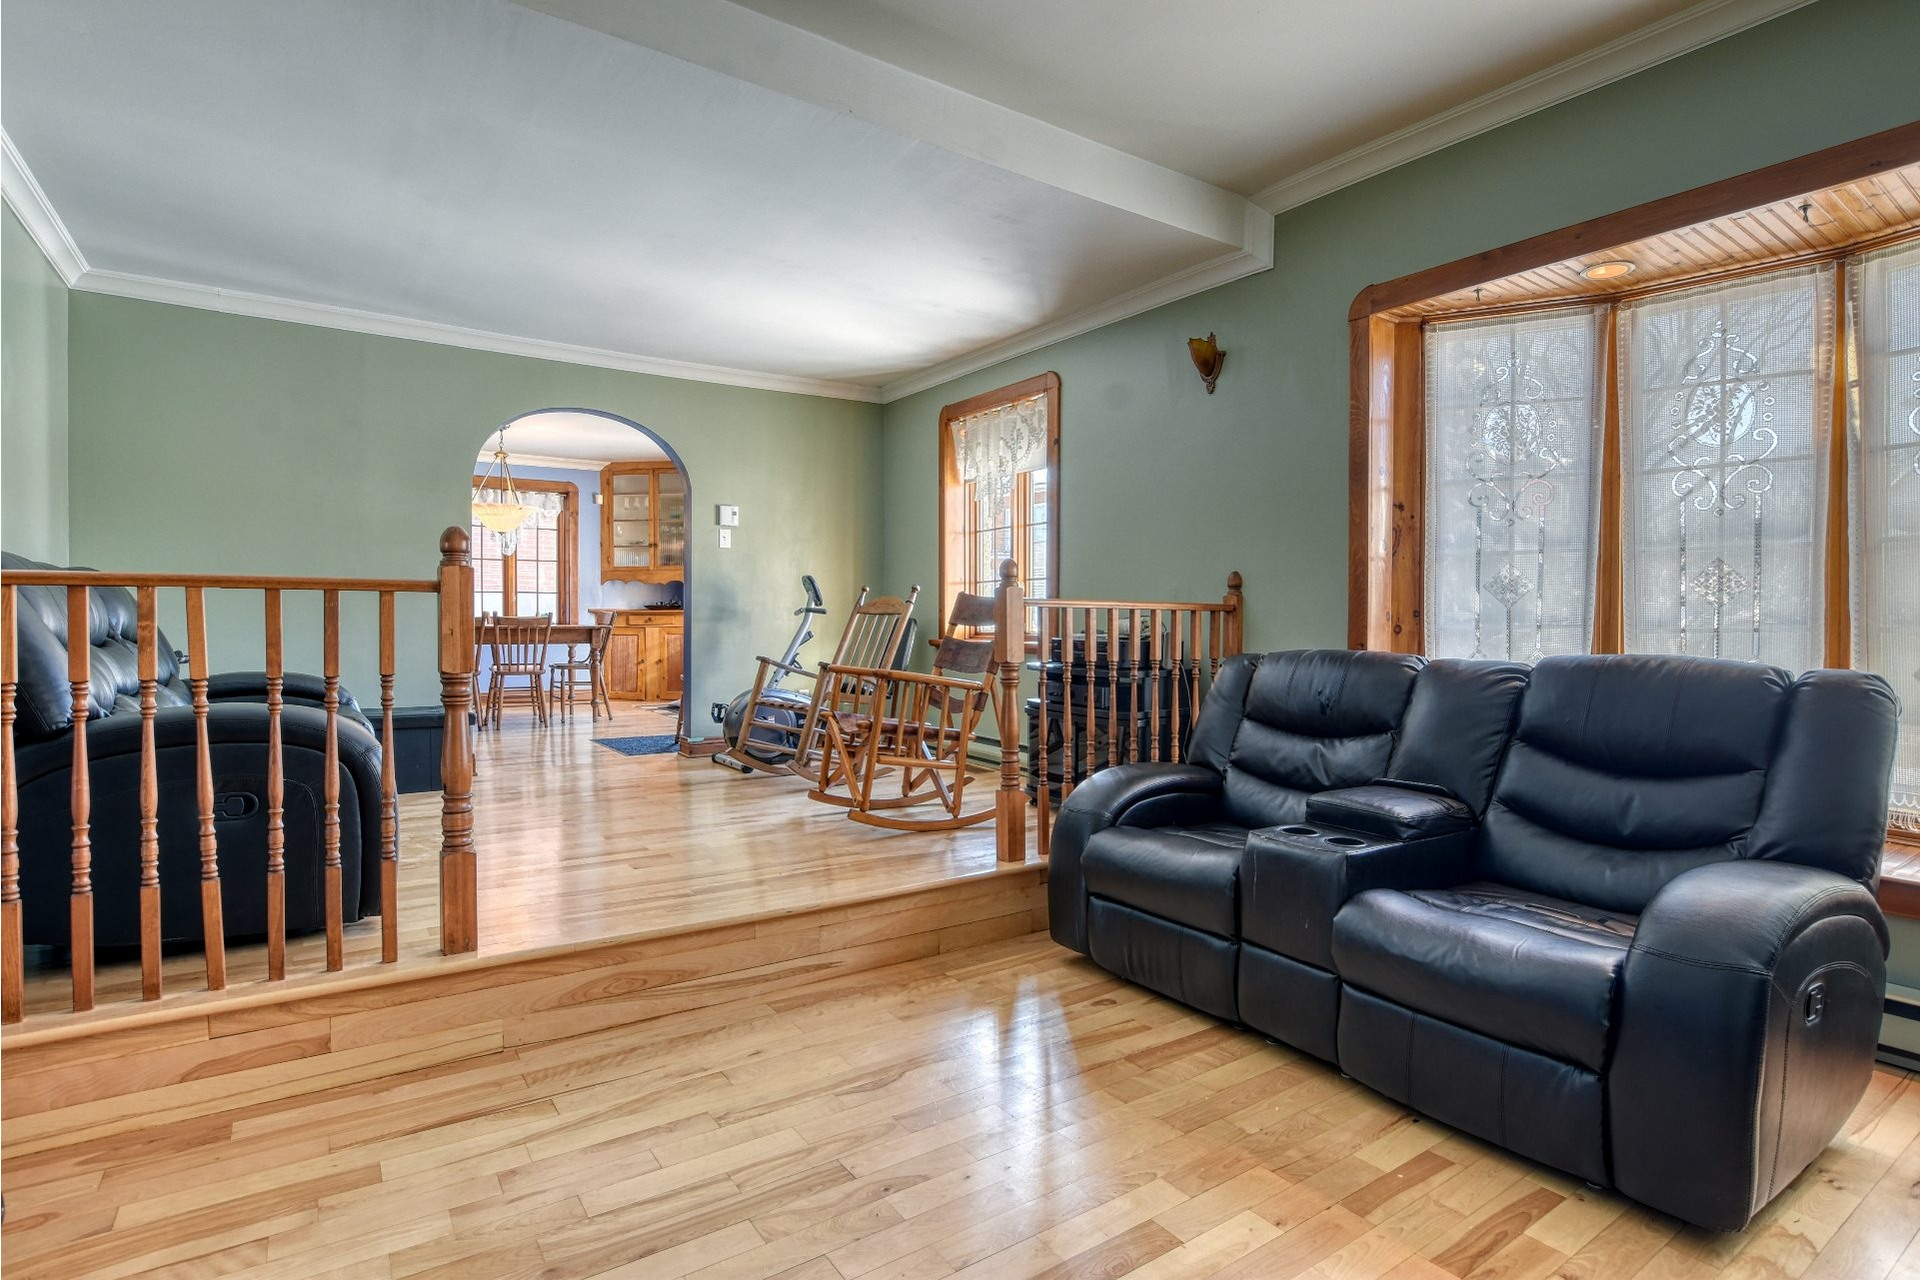 image 8 - House For sale Saint-Laurent Montréal  - 10 rooms